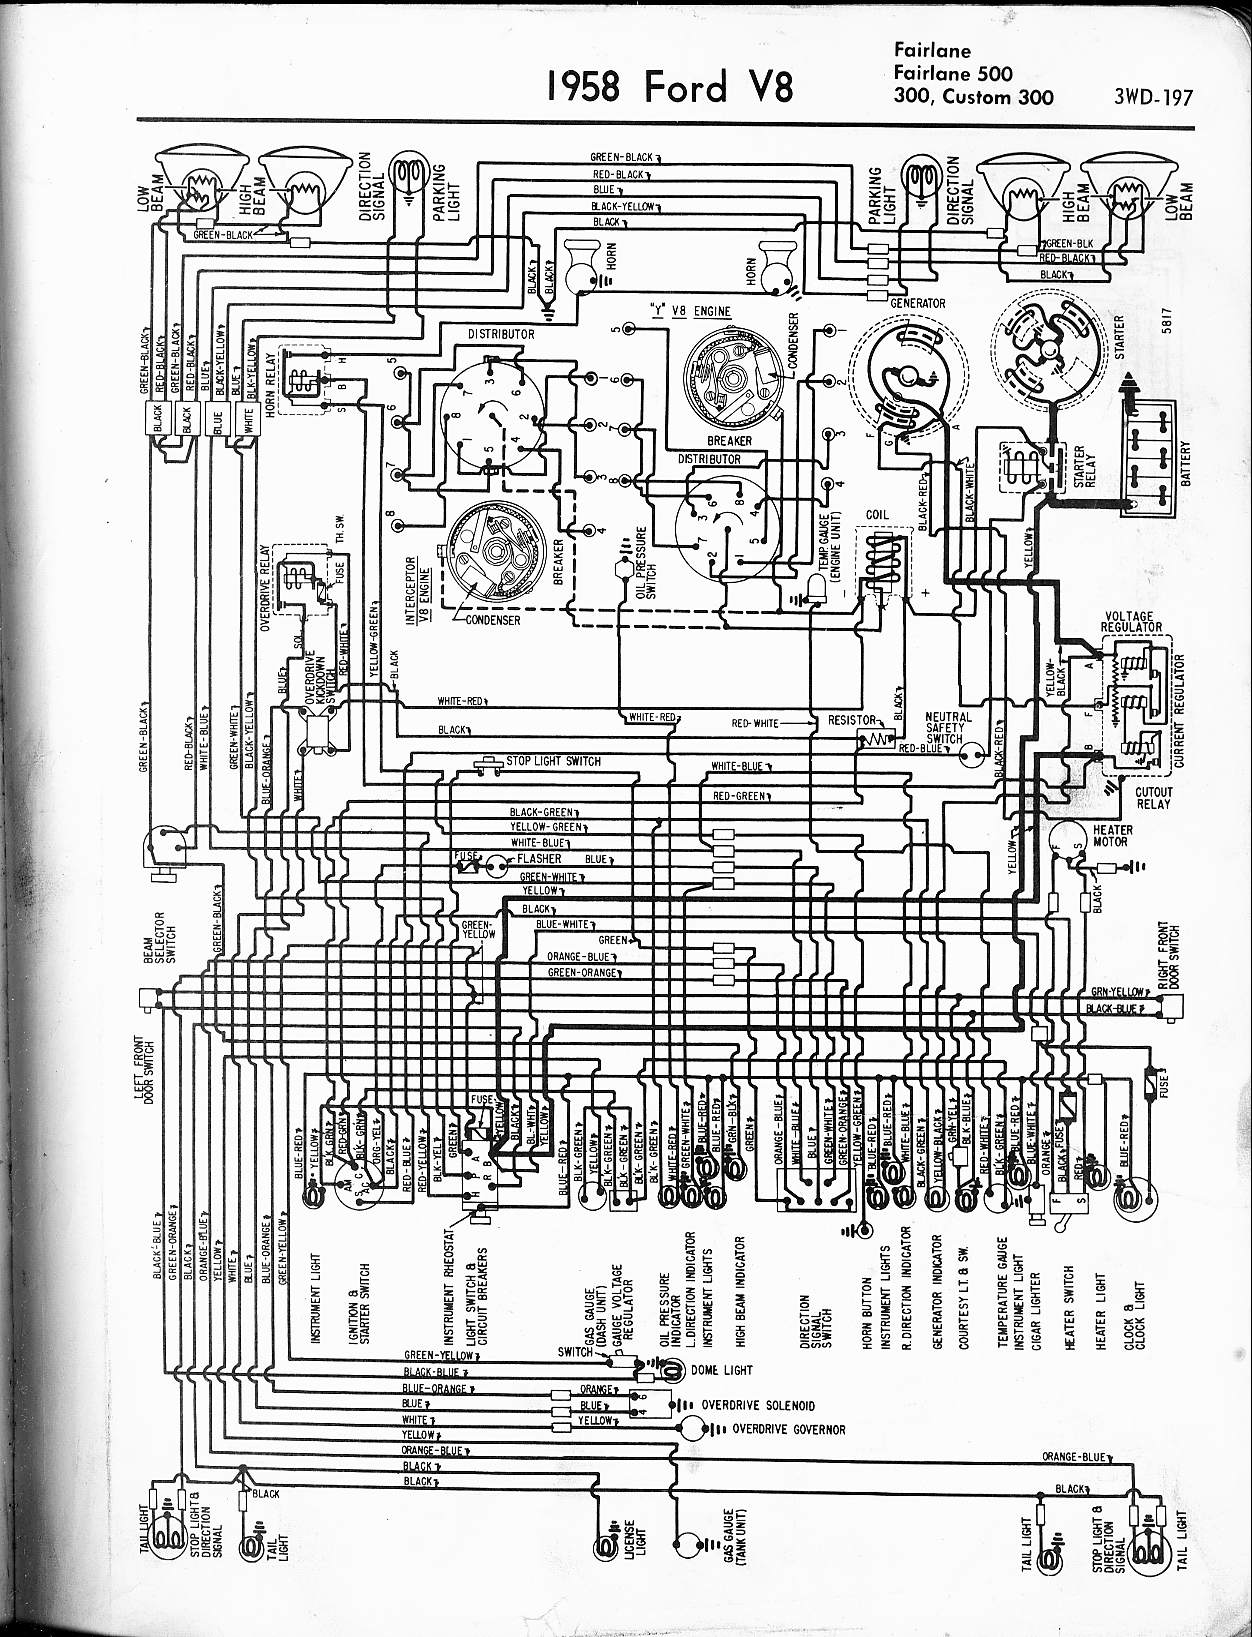 57-65 Ford Wiring Diagrams on ford aerostar wiring diagram, ford f-250 super duty wiring diagram, 1937 ford wiring diagram, ford 500 wiring diagram, ford f500 wiring diagram, ford fairlane rear suspension, 1963 ford wiring diagram, 1964 ford truck wiring diagram, ford fairlane fuel tank, ford truck wiring schematics, ford granada wiring diagram, ford econoline van wiring diagram, ford fairlane exhaust, ford fairlane radio, ford electrical wiring diagrams, ford fairlane specifications, ford fairlane body, ford thunderbird wiring diagram, 1965 ford truck wiring diagram, ford flex wiring diagram,